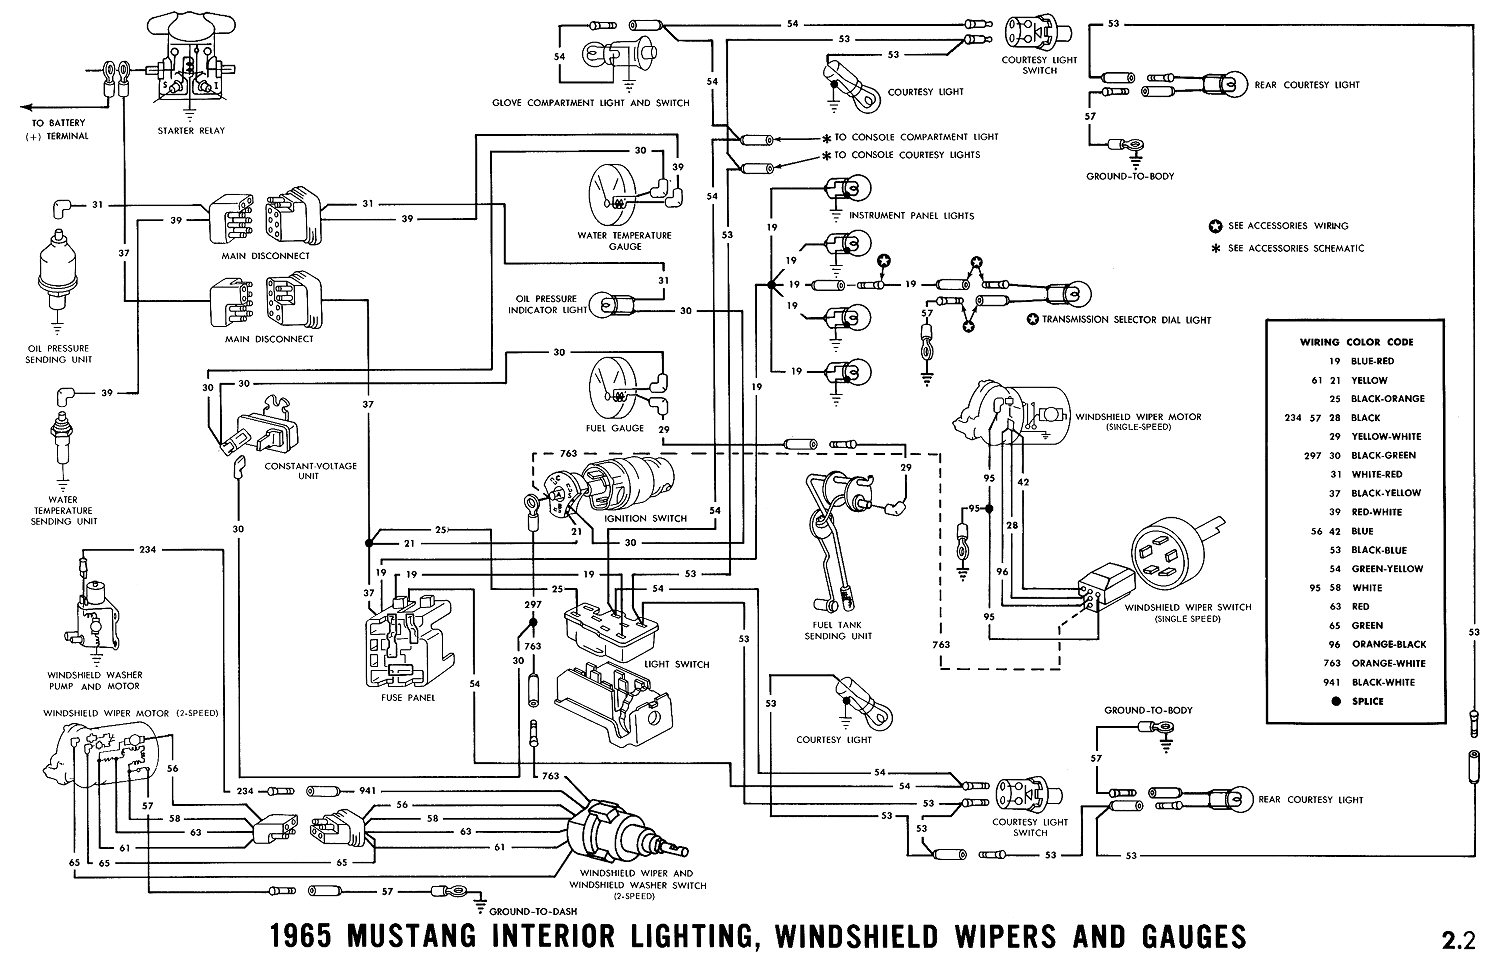 Ford Au Ute Fuse Box Diagram Wiring Library Ktm Lc4 400 65 Mustang Schematic Schematics 1967 1964